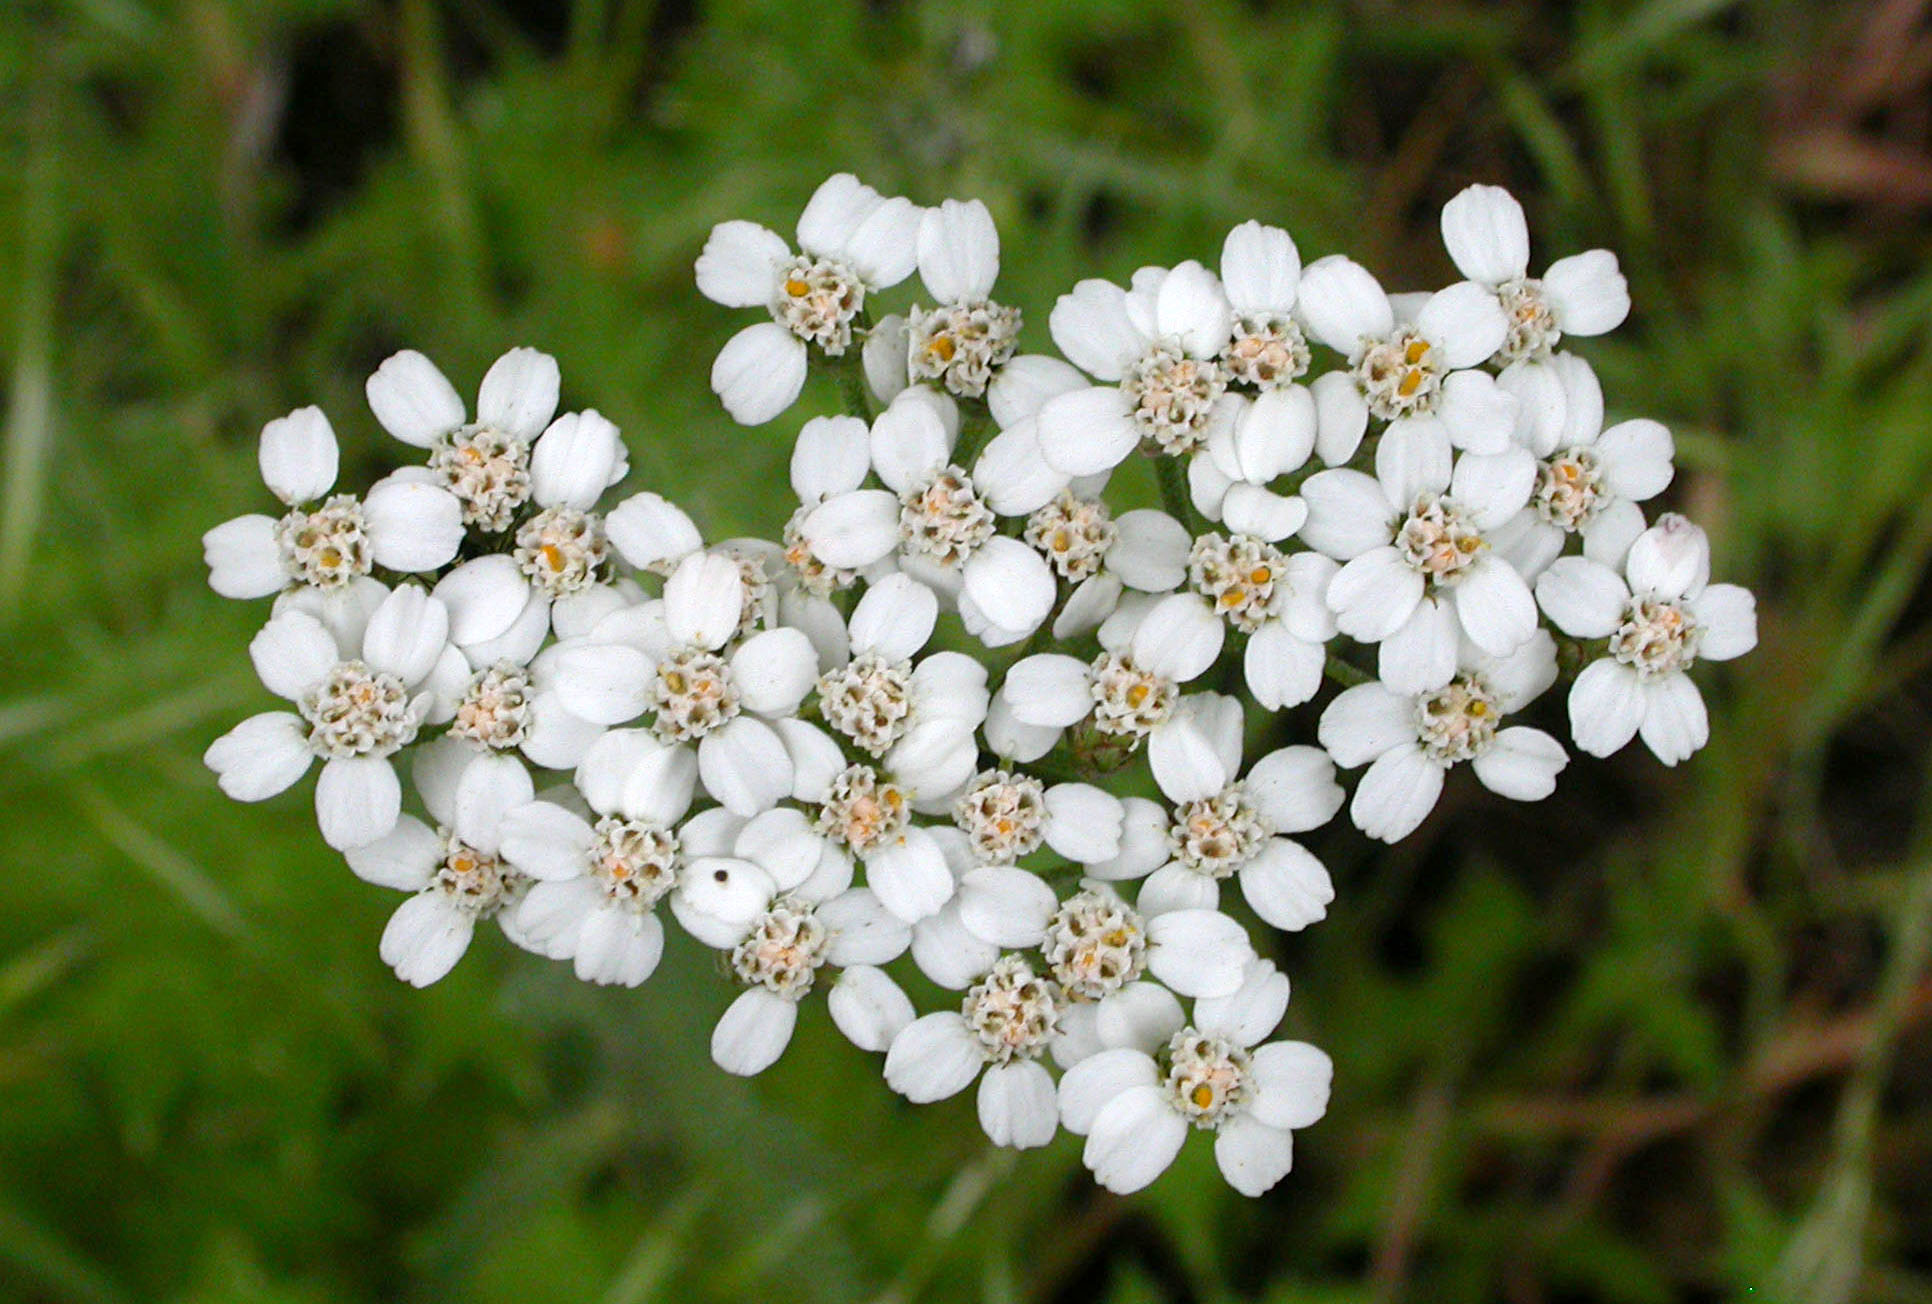 Common yarrow is one of the ozone sensitive species found at Hawai'i Volcanoes NP.